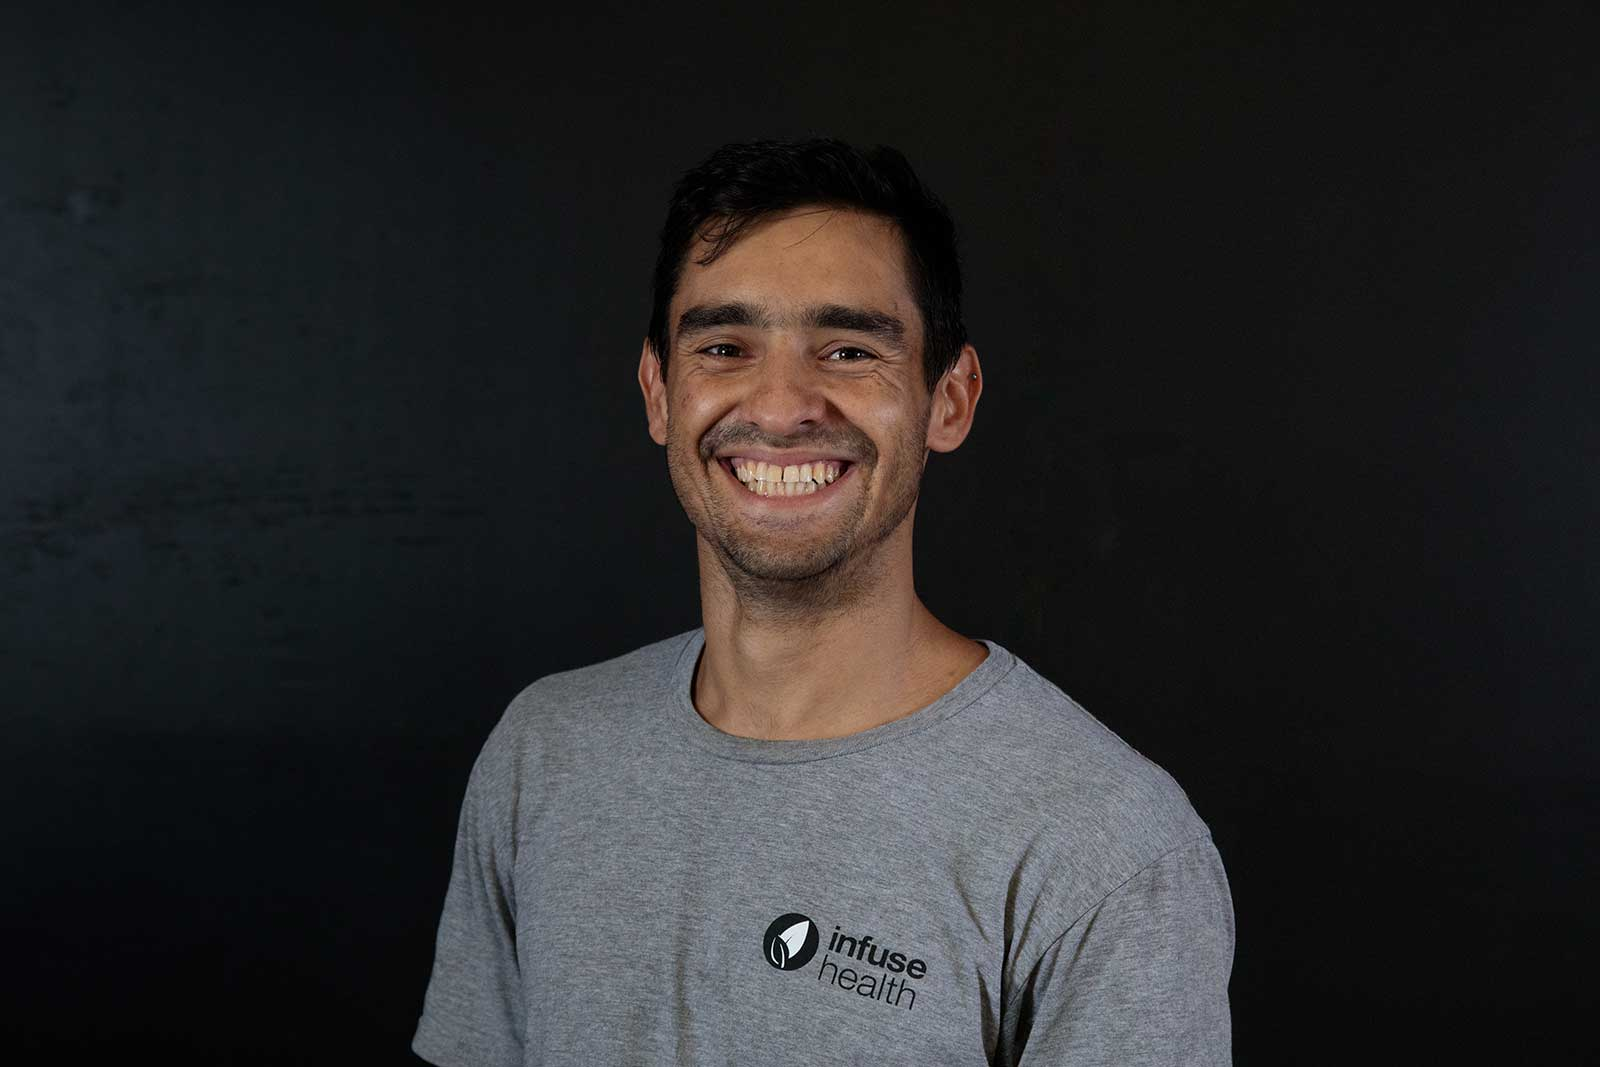 Elias Trotti, a movement instructor at infuse health, smiles back at the camera for his headshot